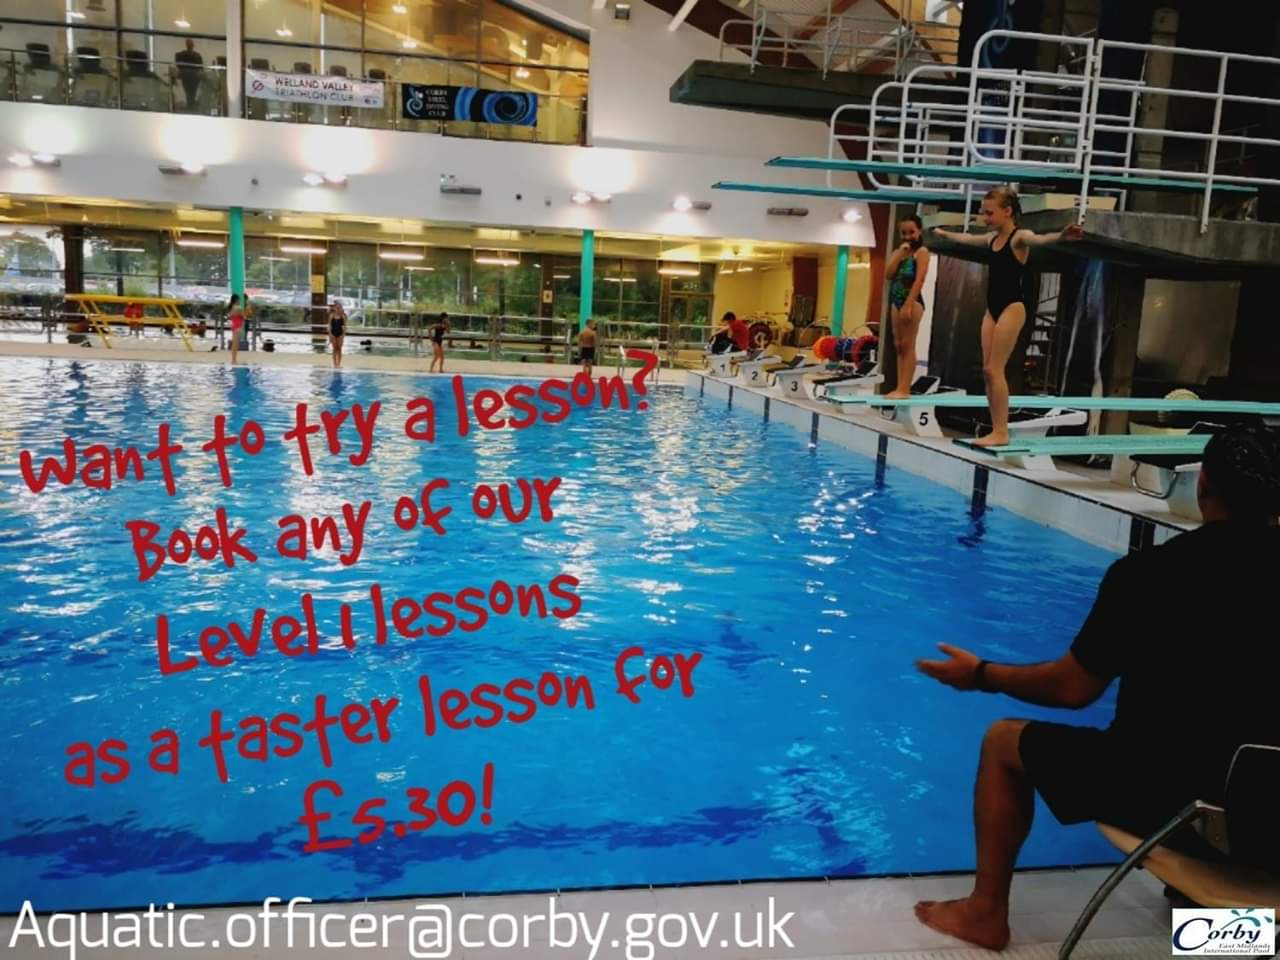 Corby Borough Council run a variety of diving lessons from Corby East Midlands International Pool.